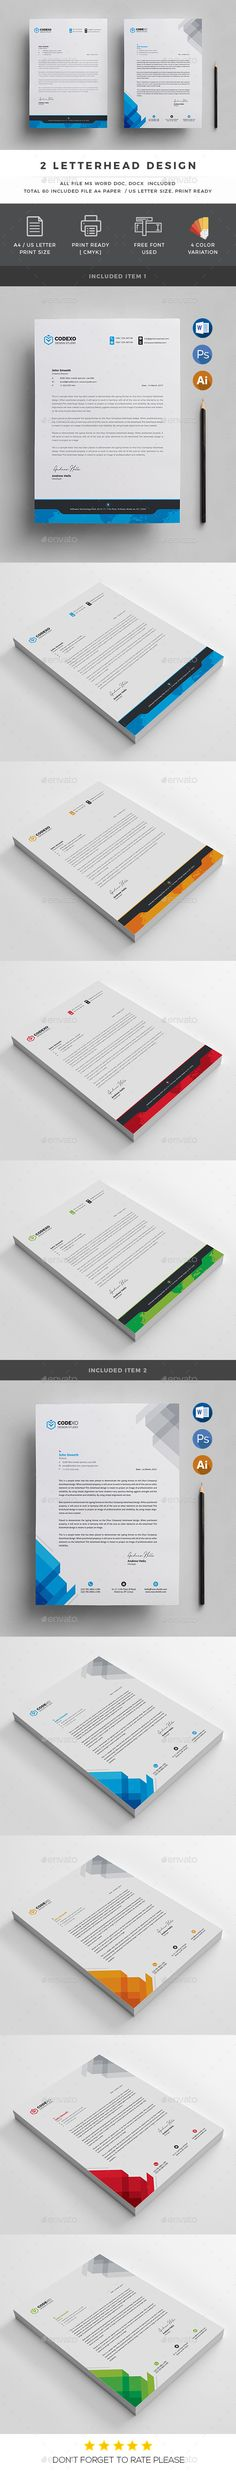 Business Company Letterhead Template - Free small, medium and - free business letterhead templates download